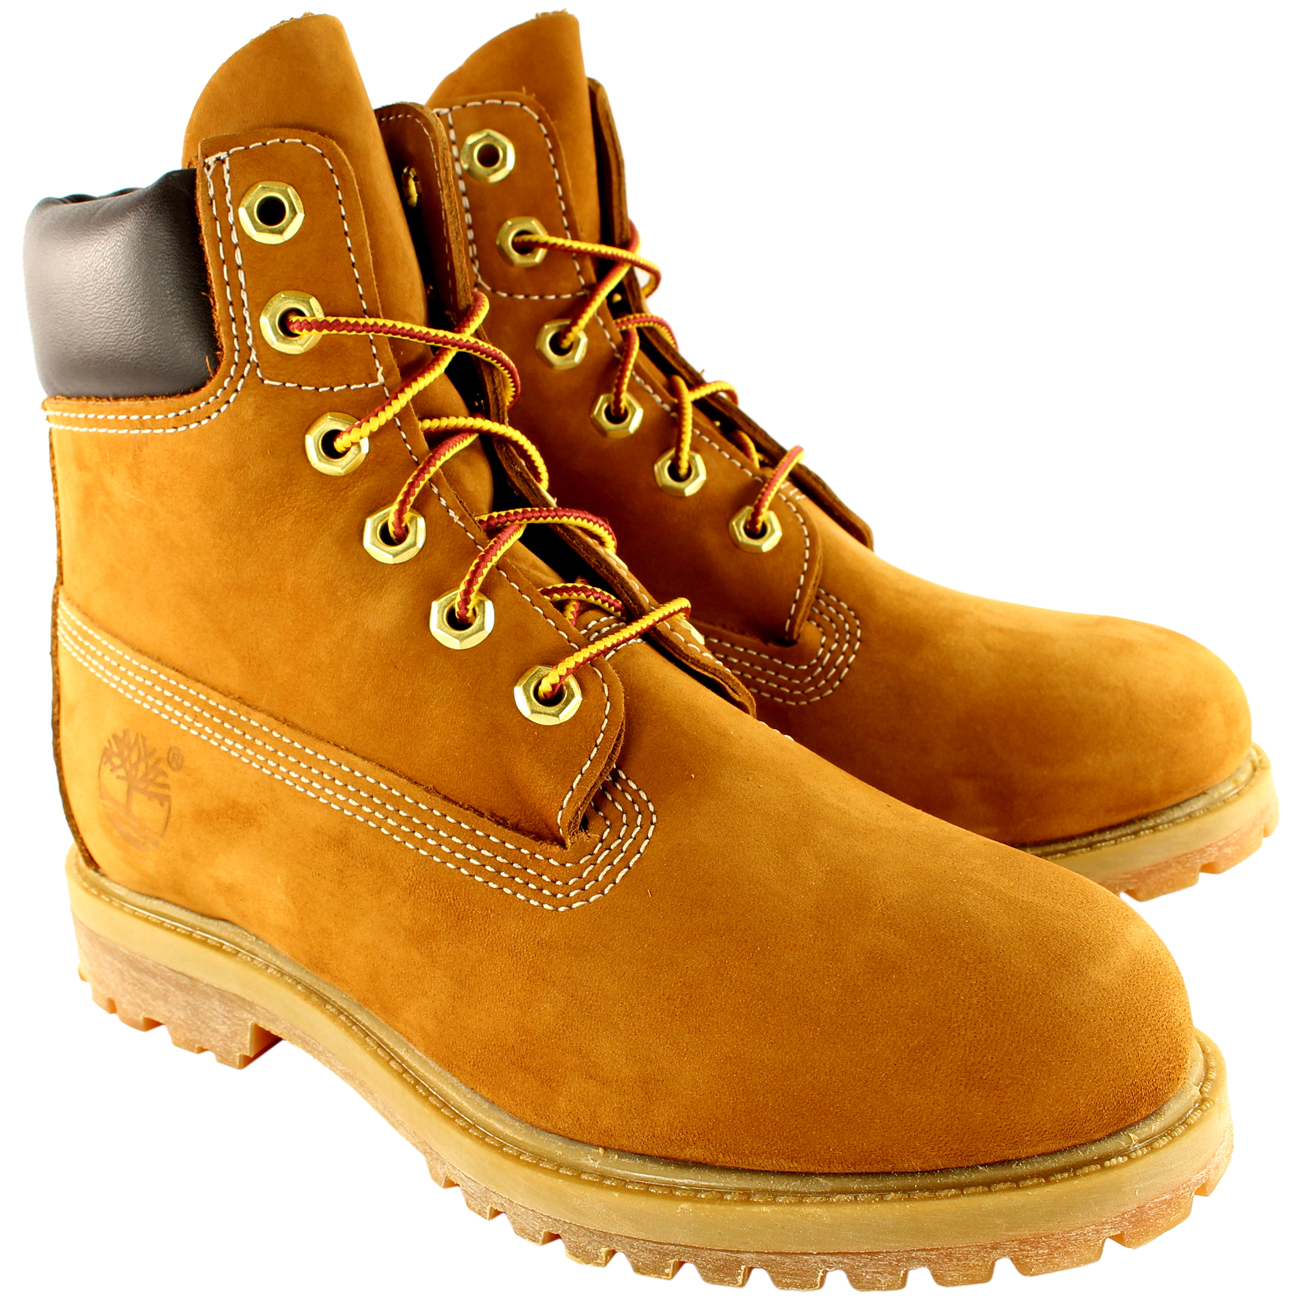 Details about Womens Timberland Classic 6